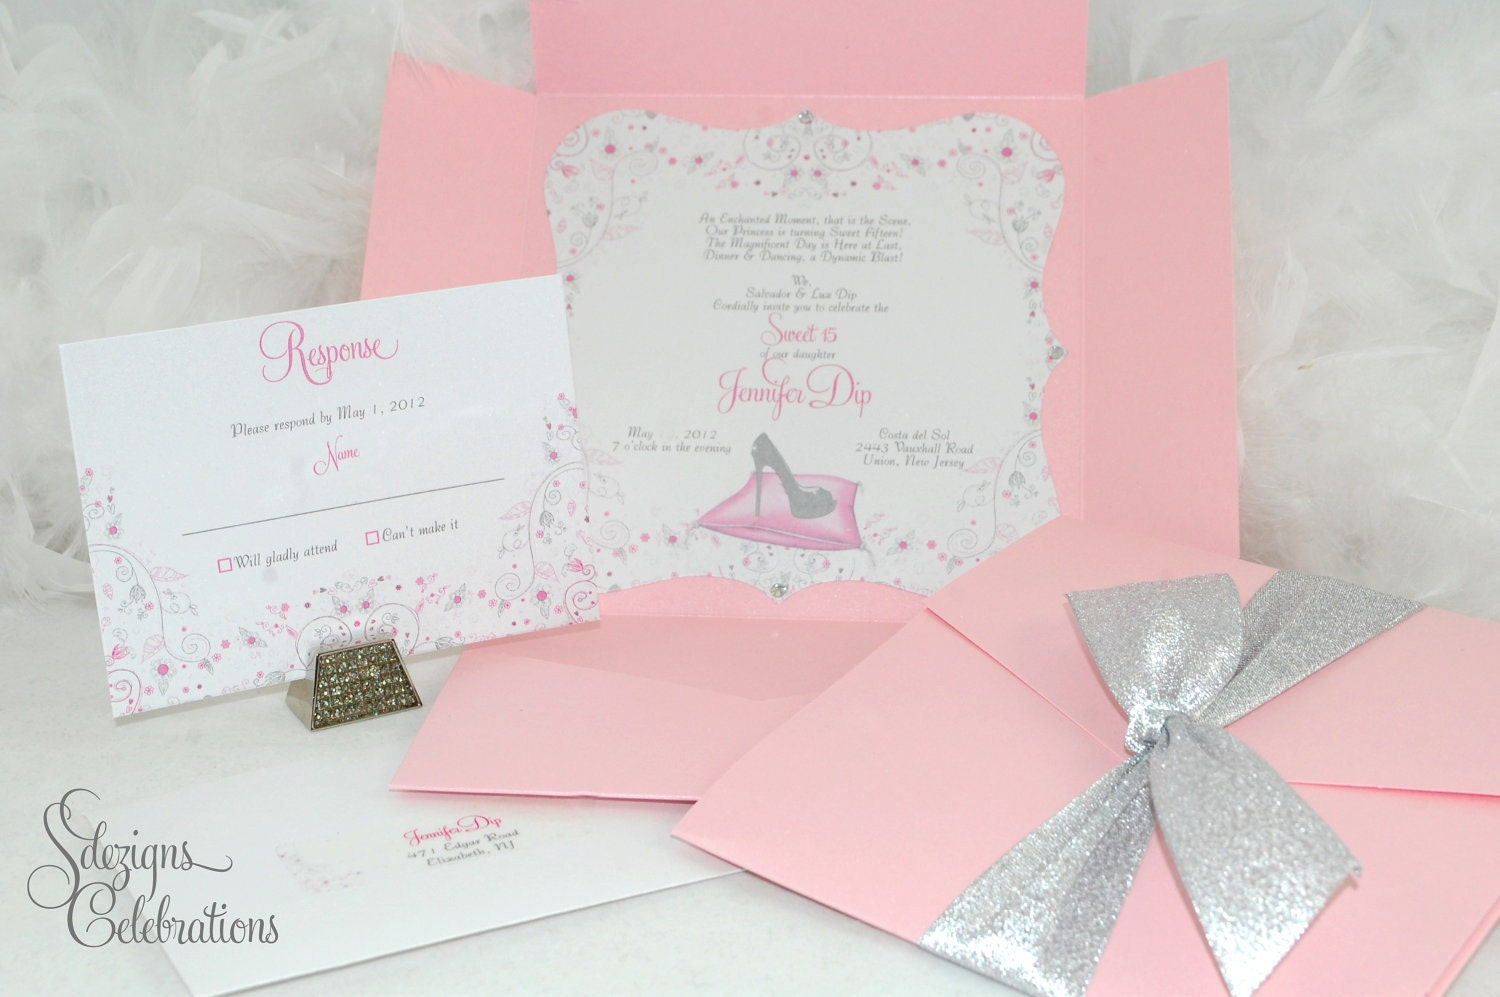 Cinderella Sweet 16 Invitations is perfect invitations ideas